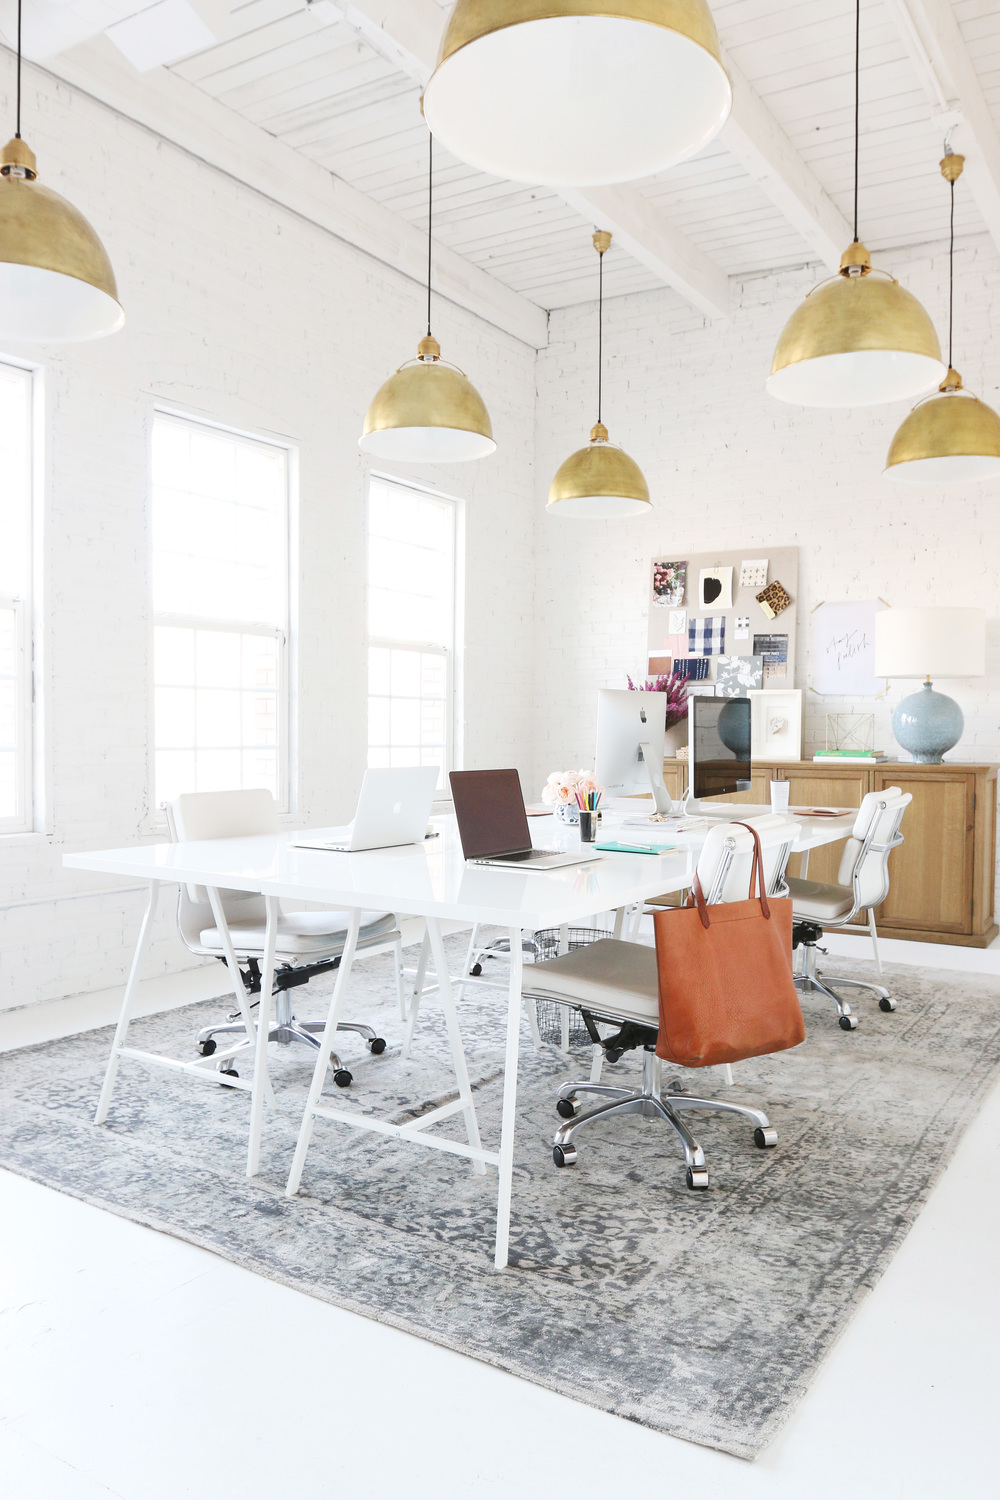 Studio mcgee for Office space inspiration